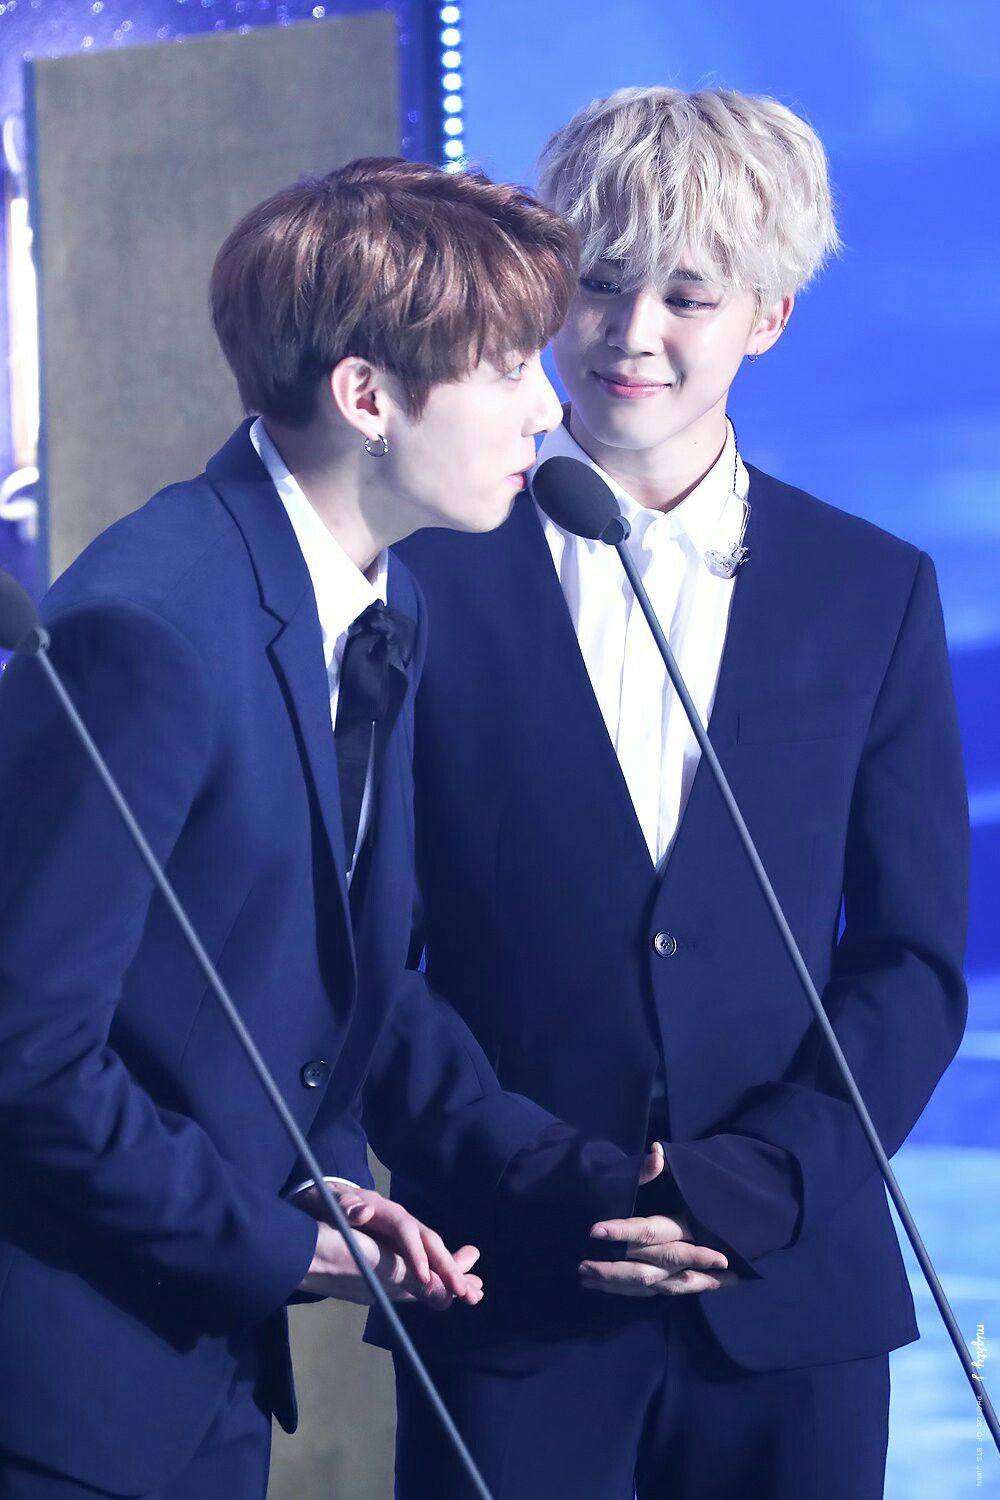 [170119] JIMIN & JUNGKOOK #jikook #BTS @ 26th Seoul Music Awards 2017